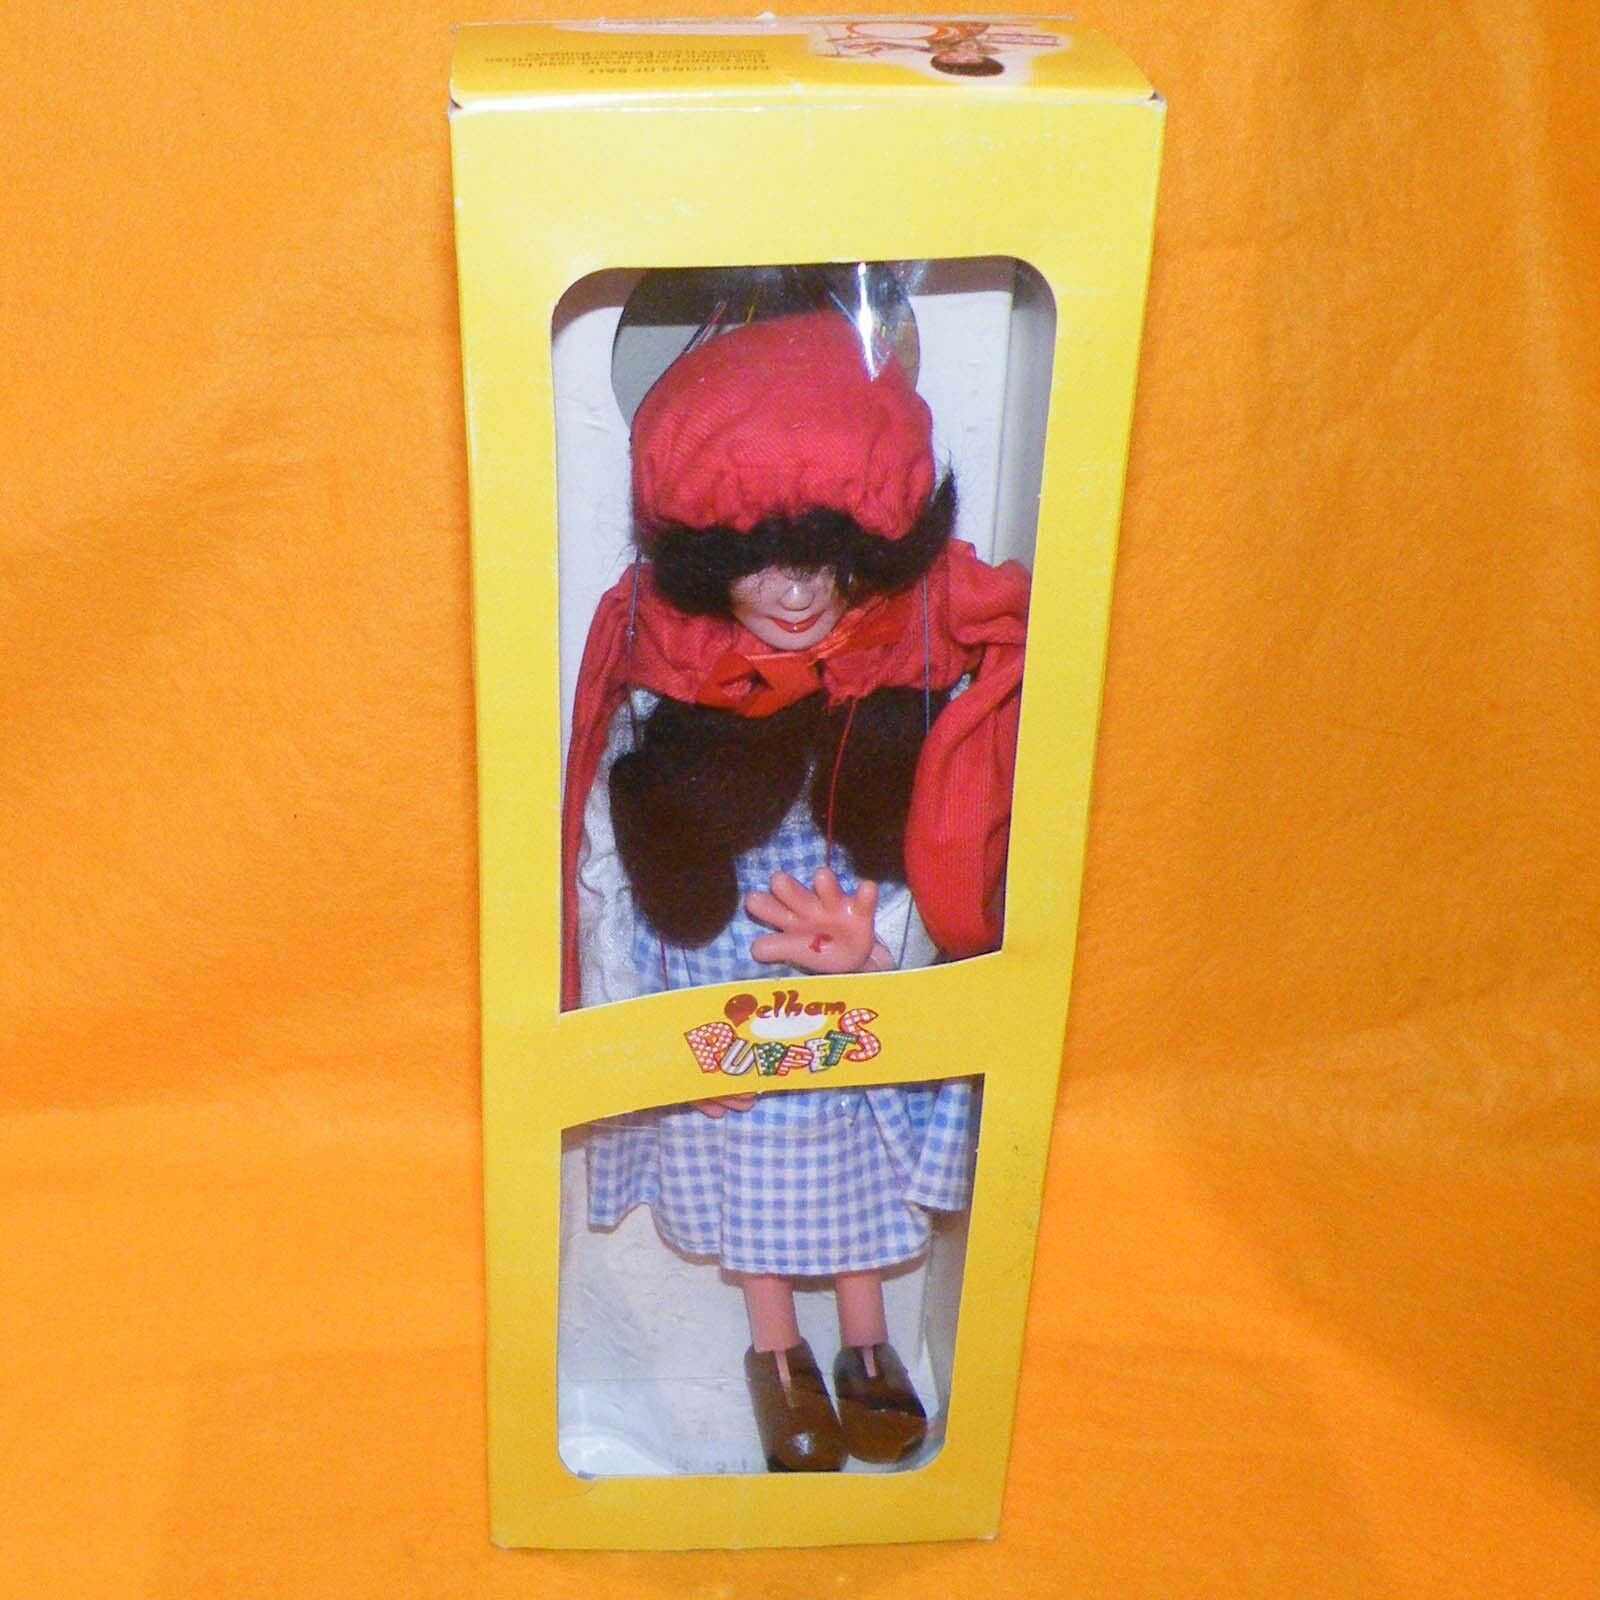 VINTAGE PELHAM PUPPETS RED RIDING HOOD SL11 (SL) HAND MADE PUPPET BOXED